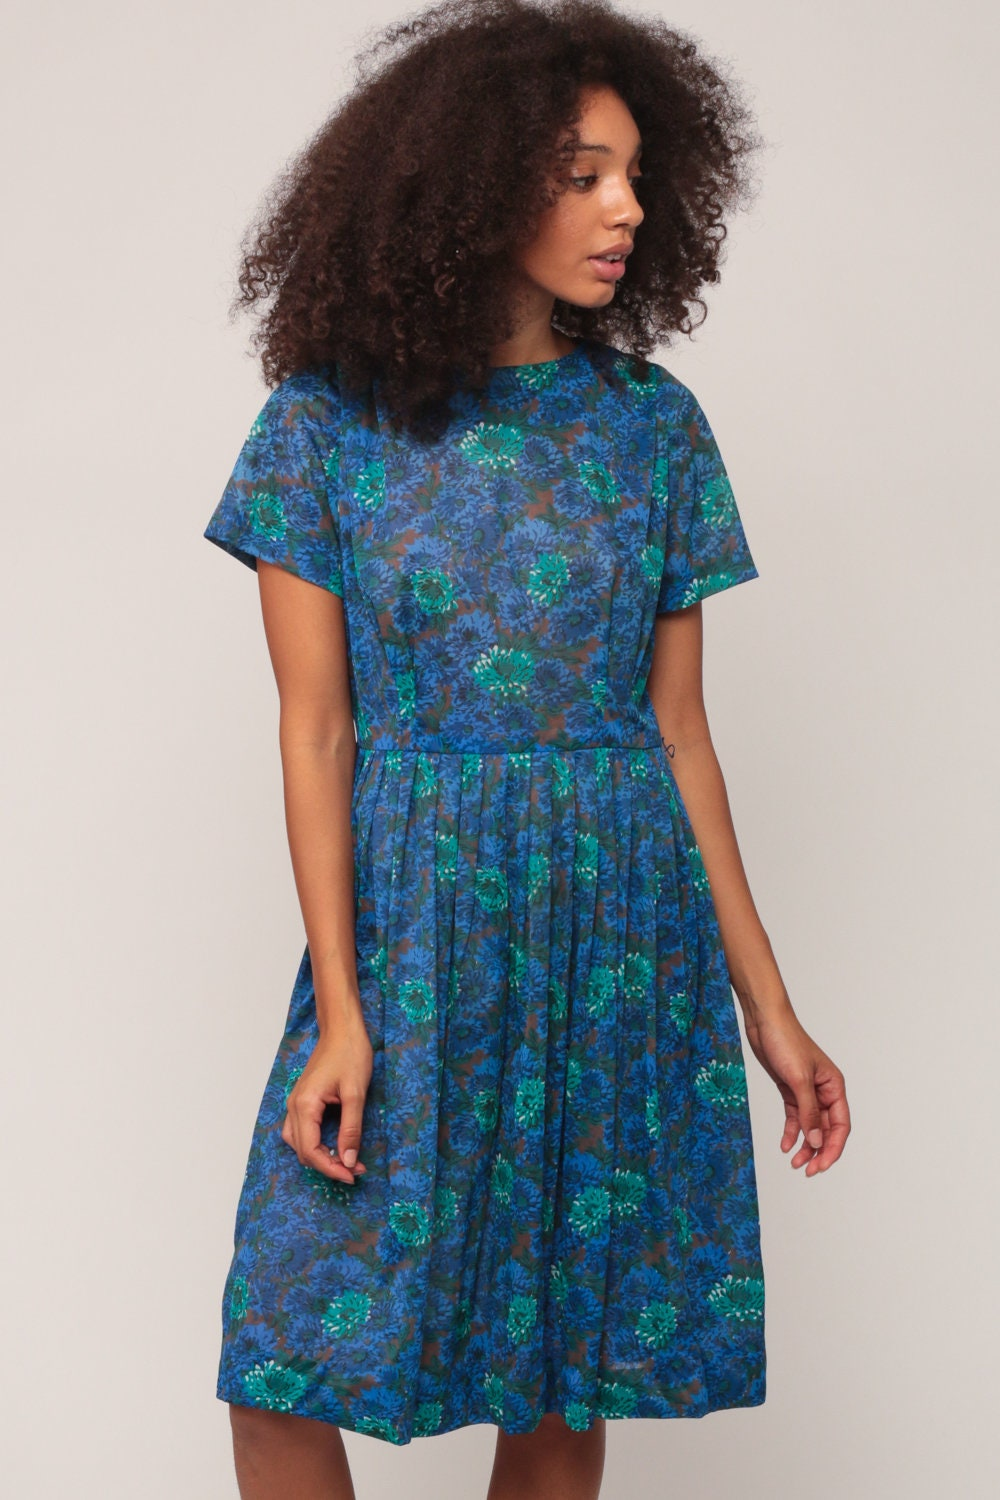 60s Floral Dress Midi PLEATED Mad Men 1960s Blue COTTON Day